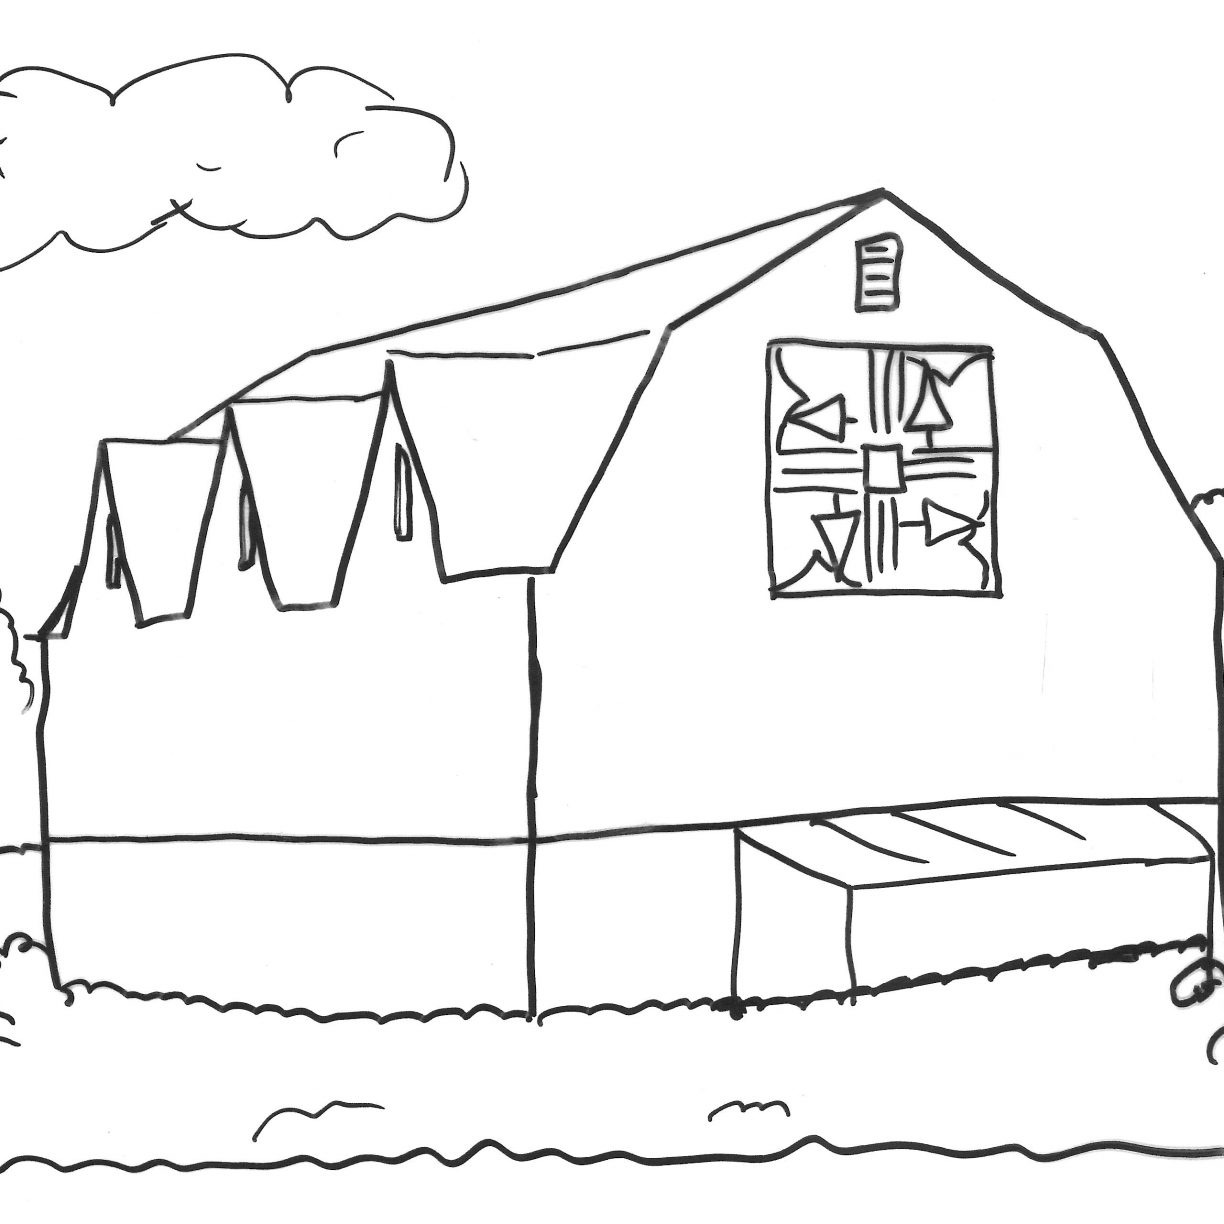 1224x1224 Imposing Hut Coloring Pages Pizza Colouring Beach Jabba The Hutt